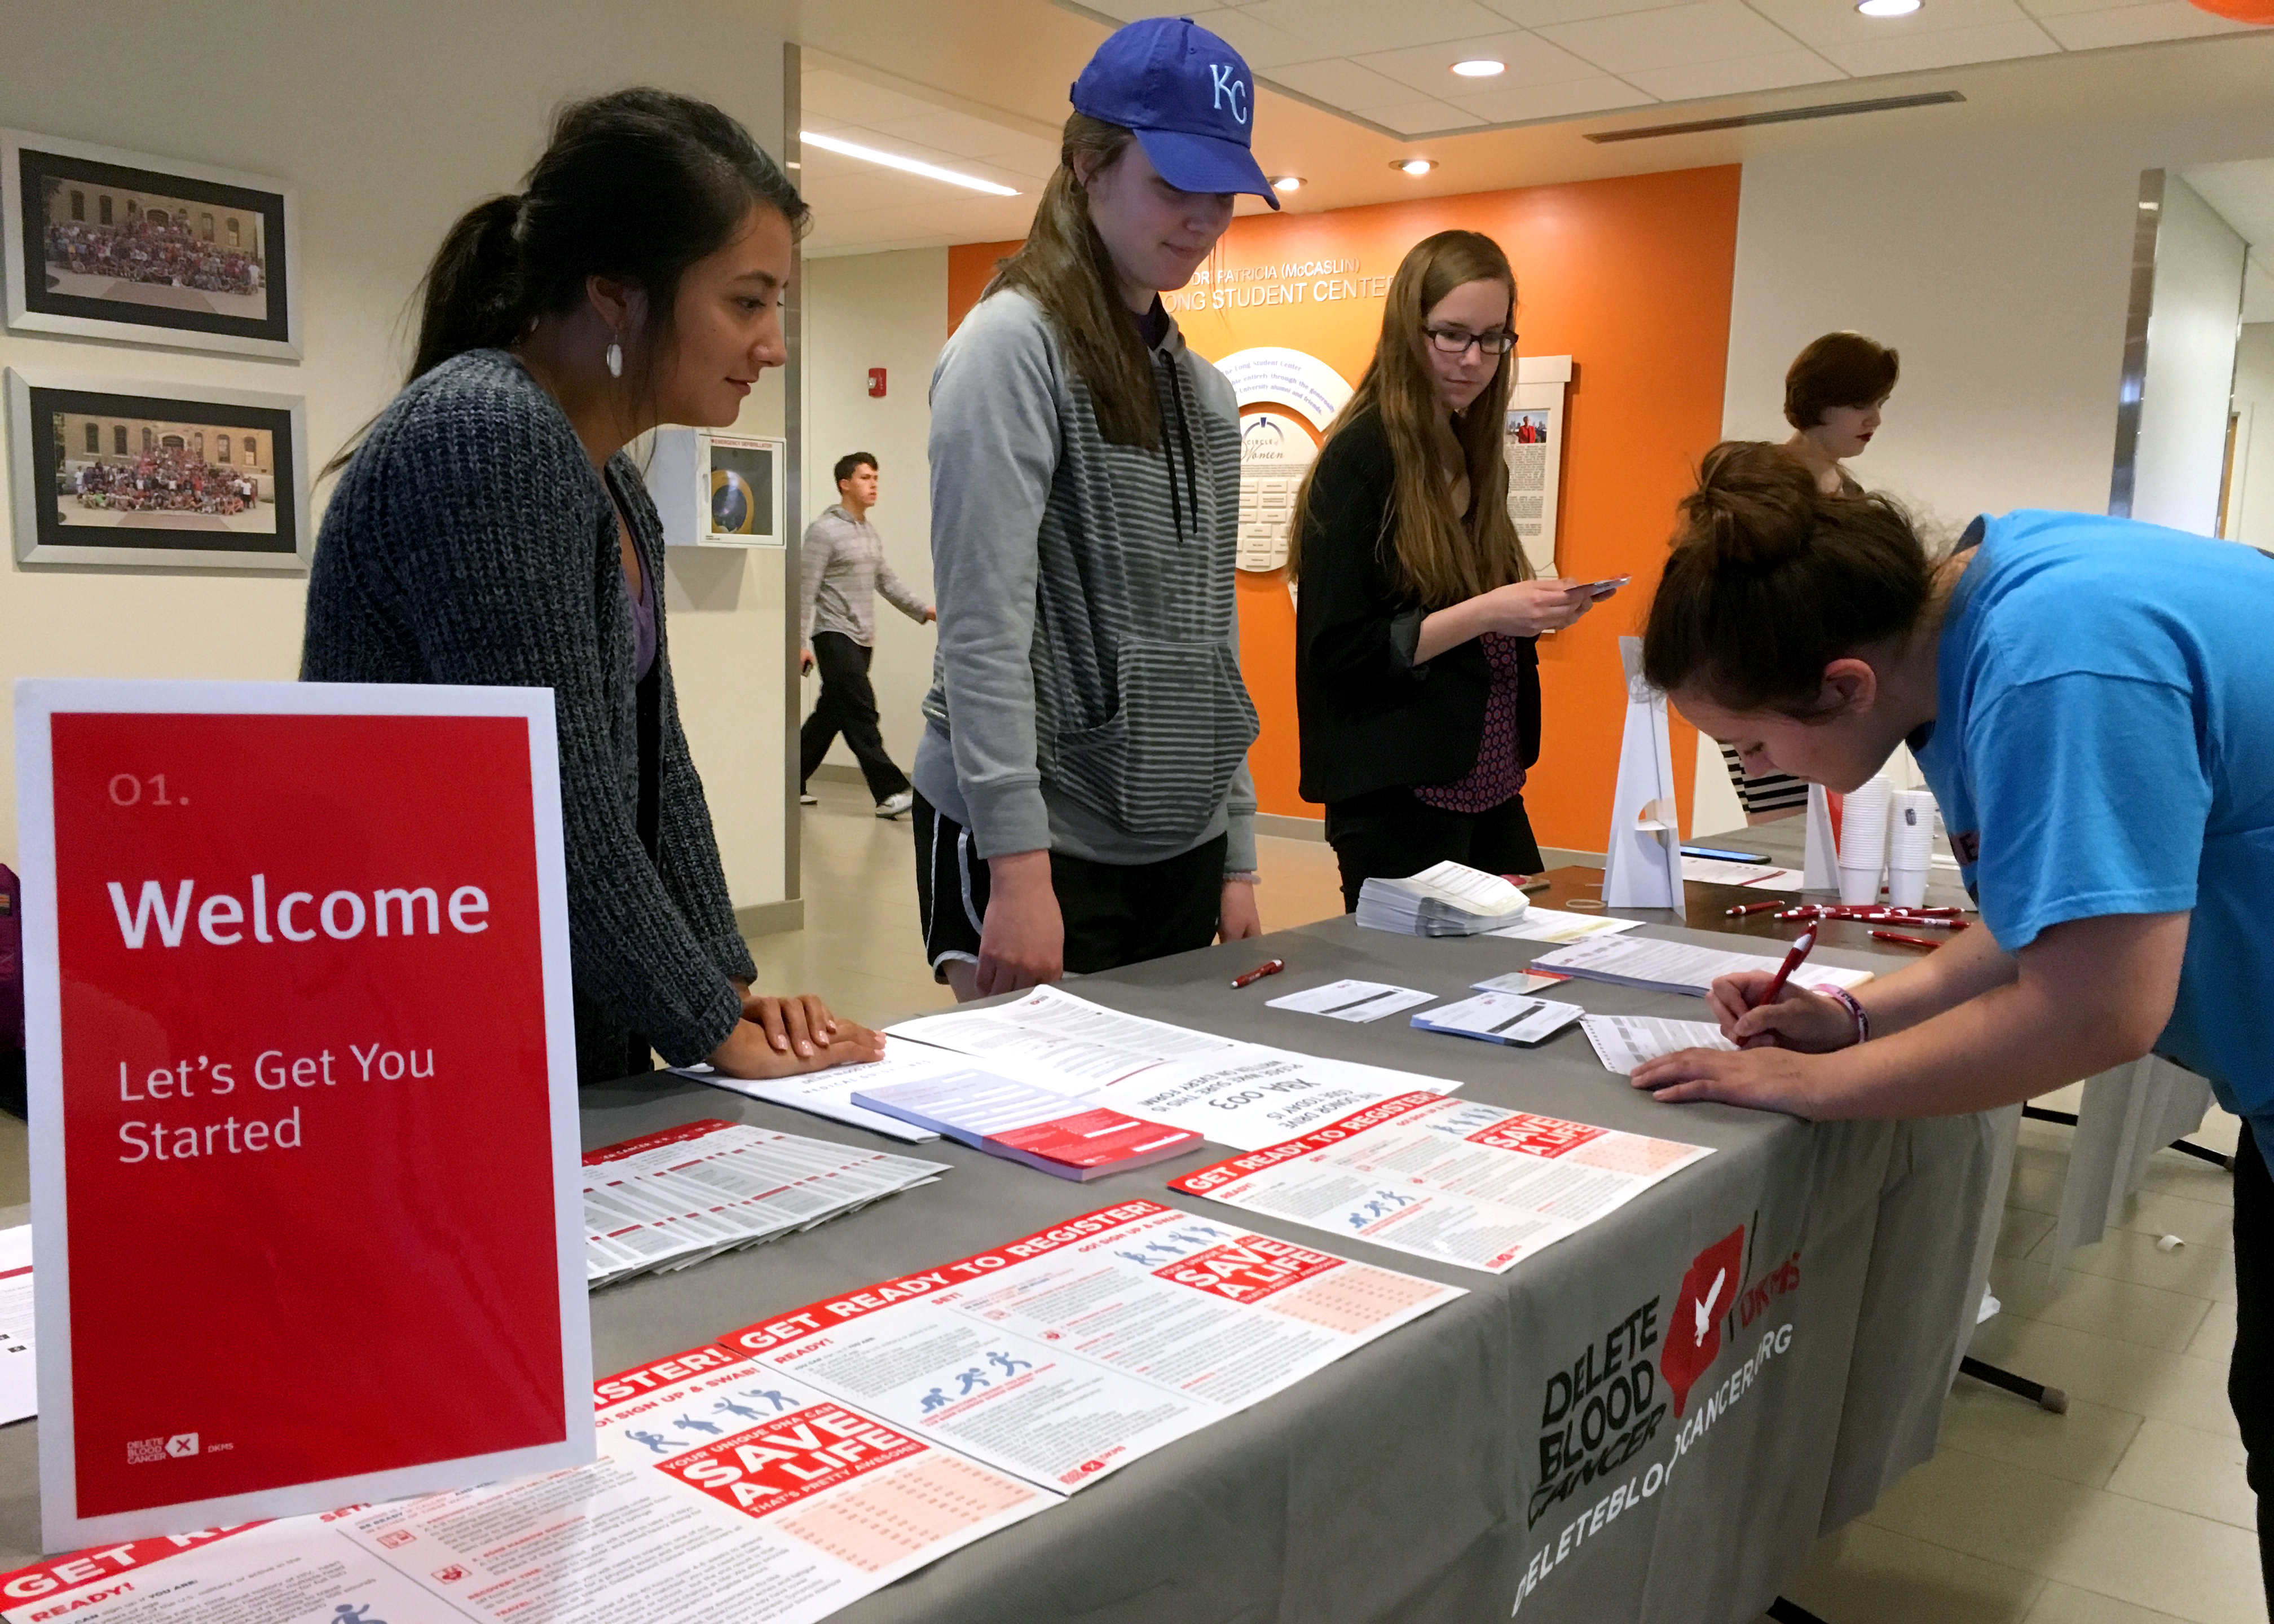 Graduate Assistant Gabby Garrison and freshman Emily Riggs help freshman Kendall Stelting sign up to be a bone marrow donor on March 8 in the Long Student Center. The chance of being a match is rare, but could help save the life of someone battling blood cancer.